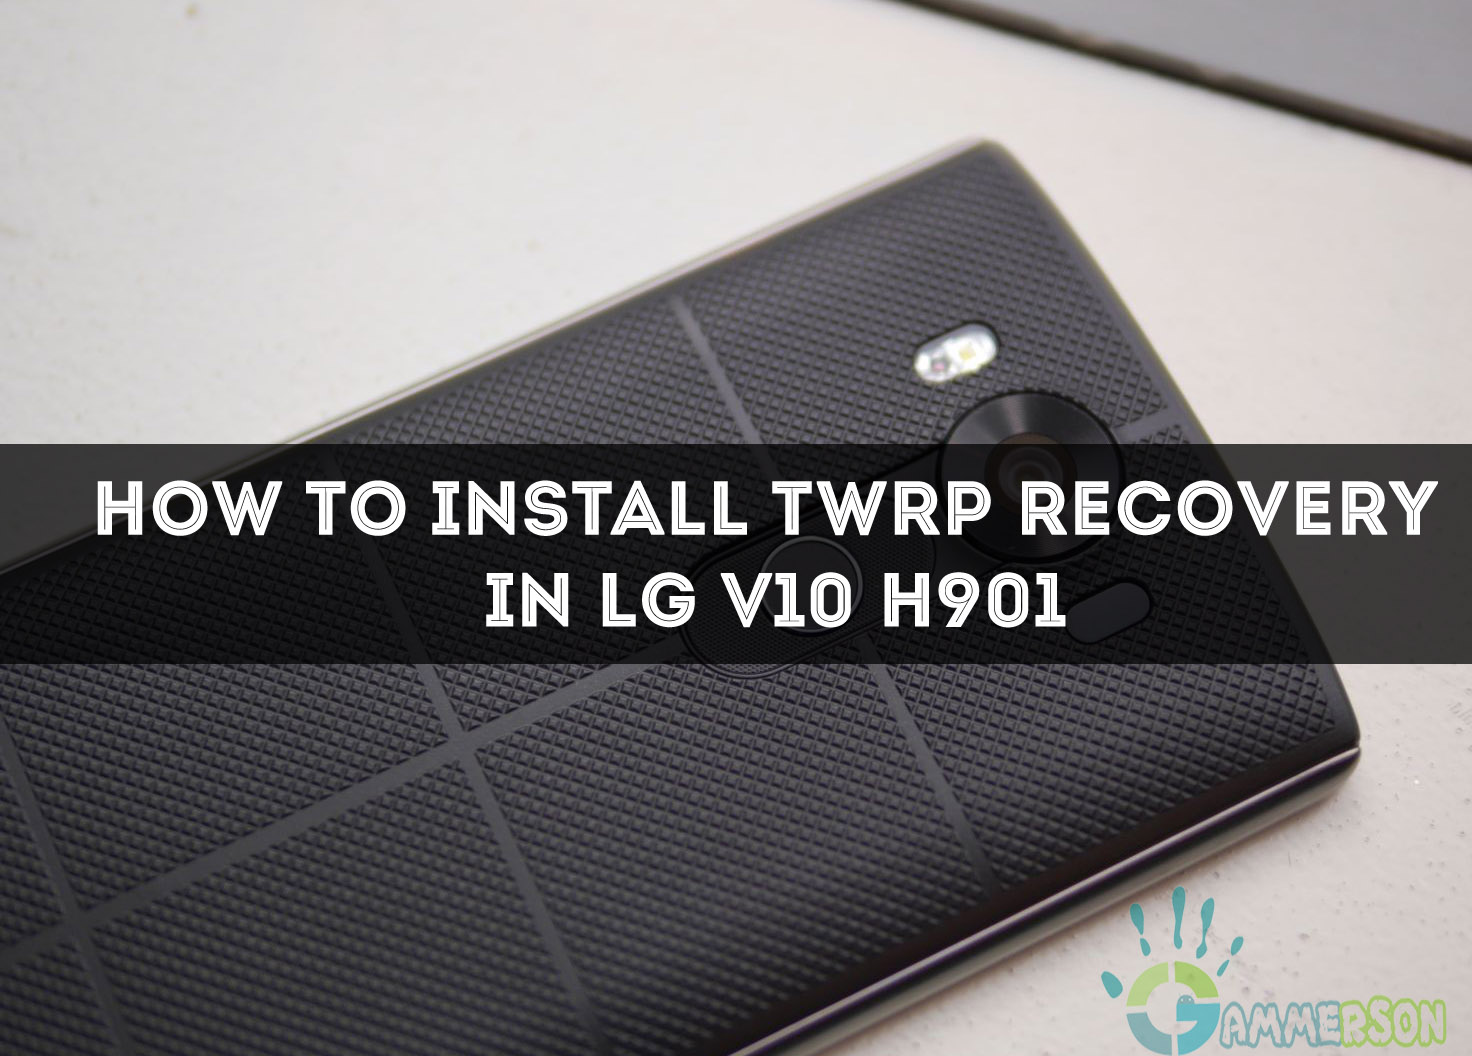 Steps] How to install TWRP recovery in LG V10 [LG-H901]